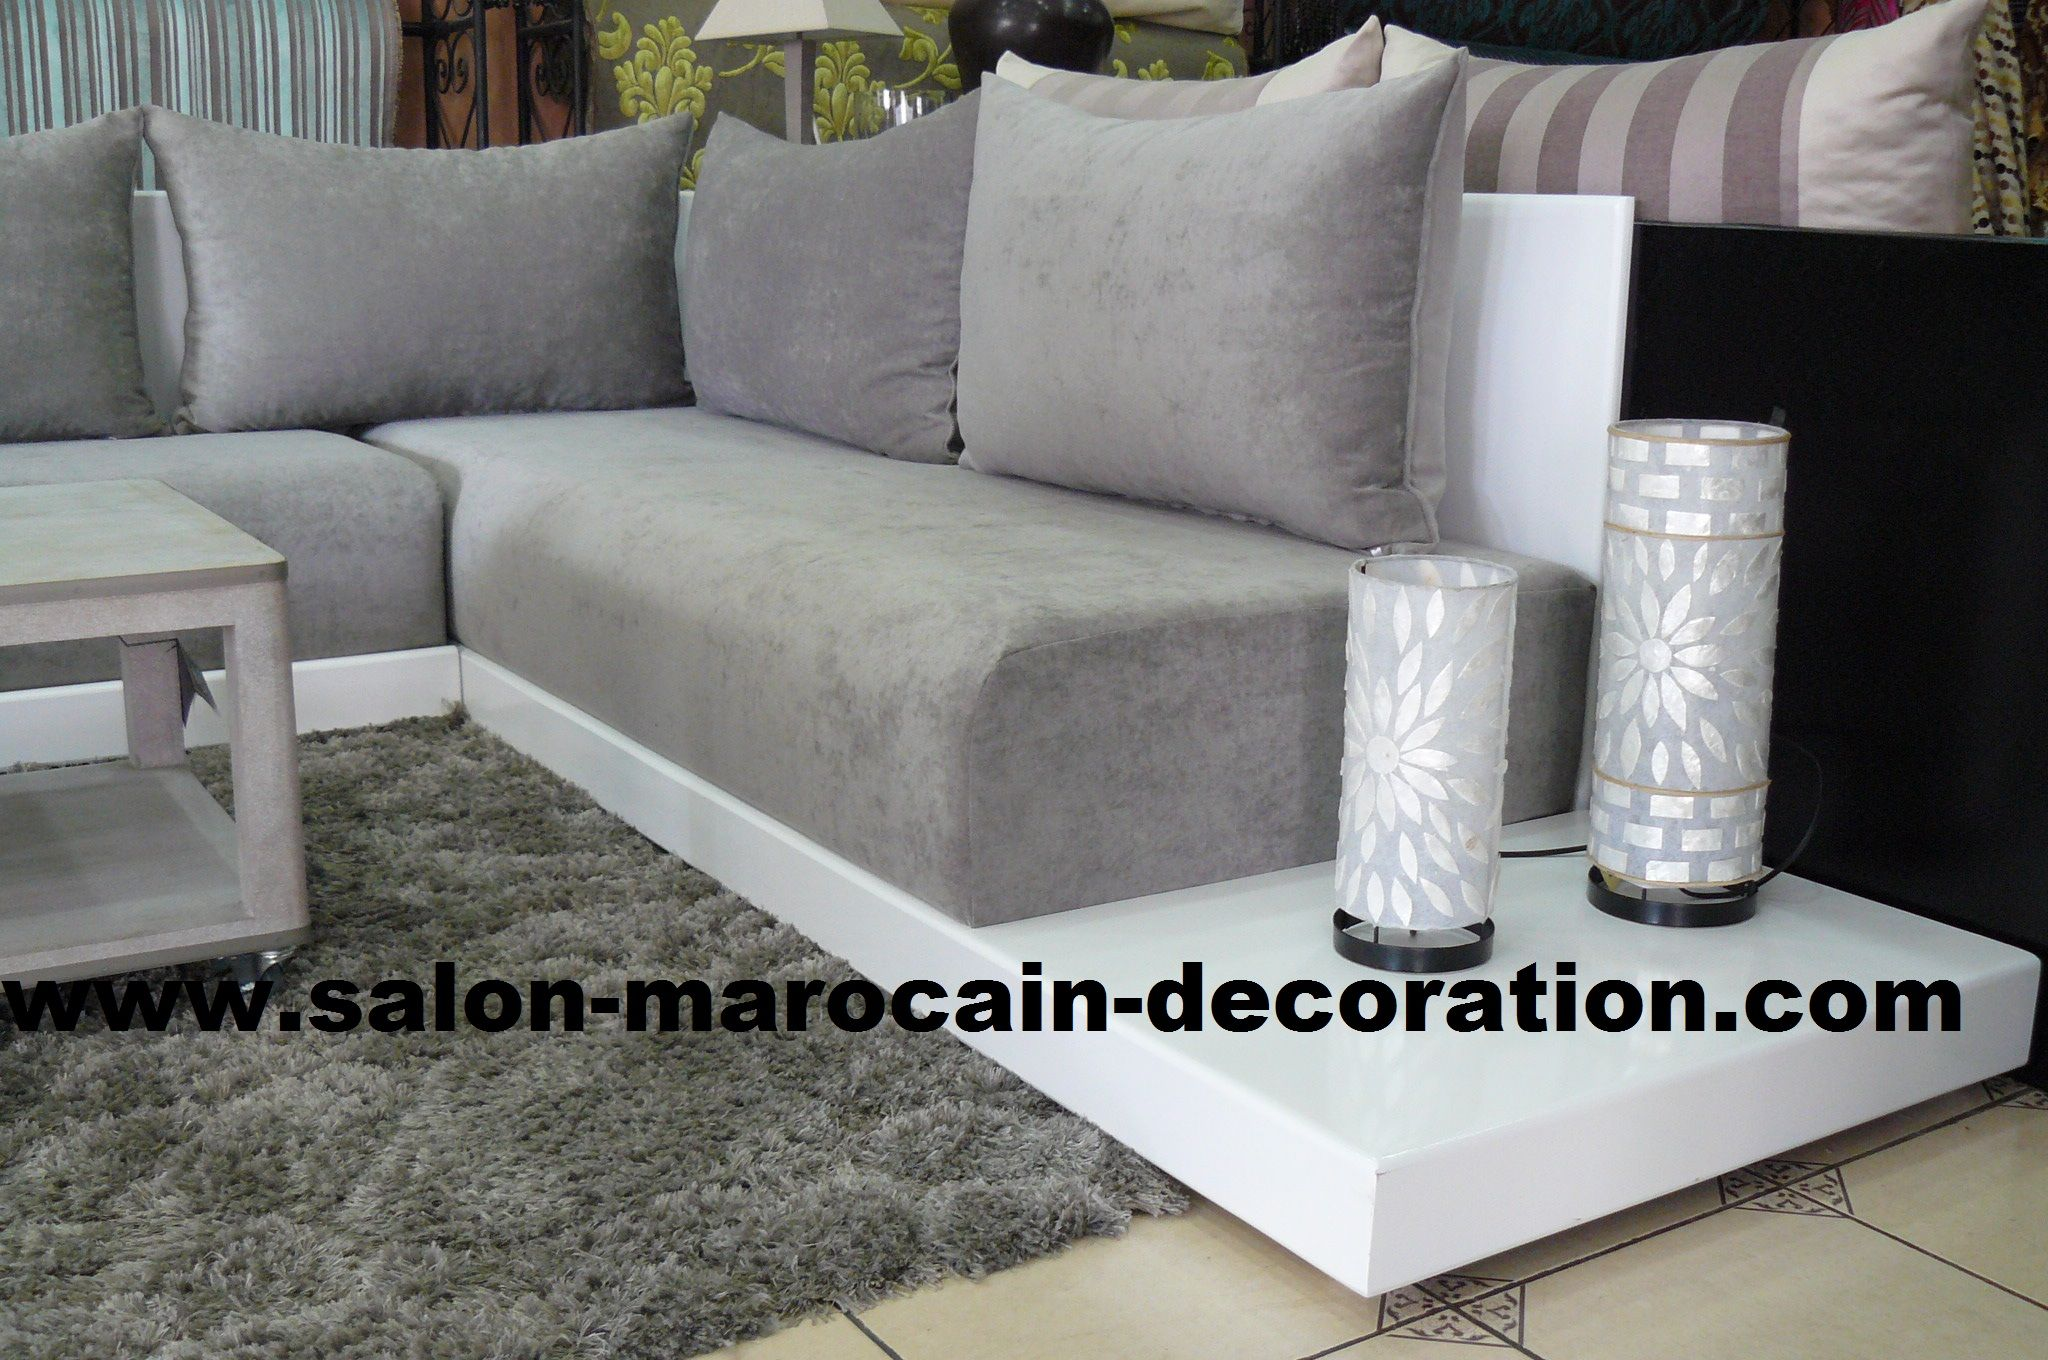 Pin by Amal on Decoration in 2019 | Salon marocain, Deco salon, Diy sofa